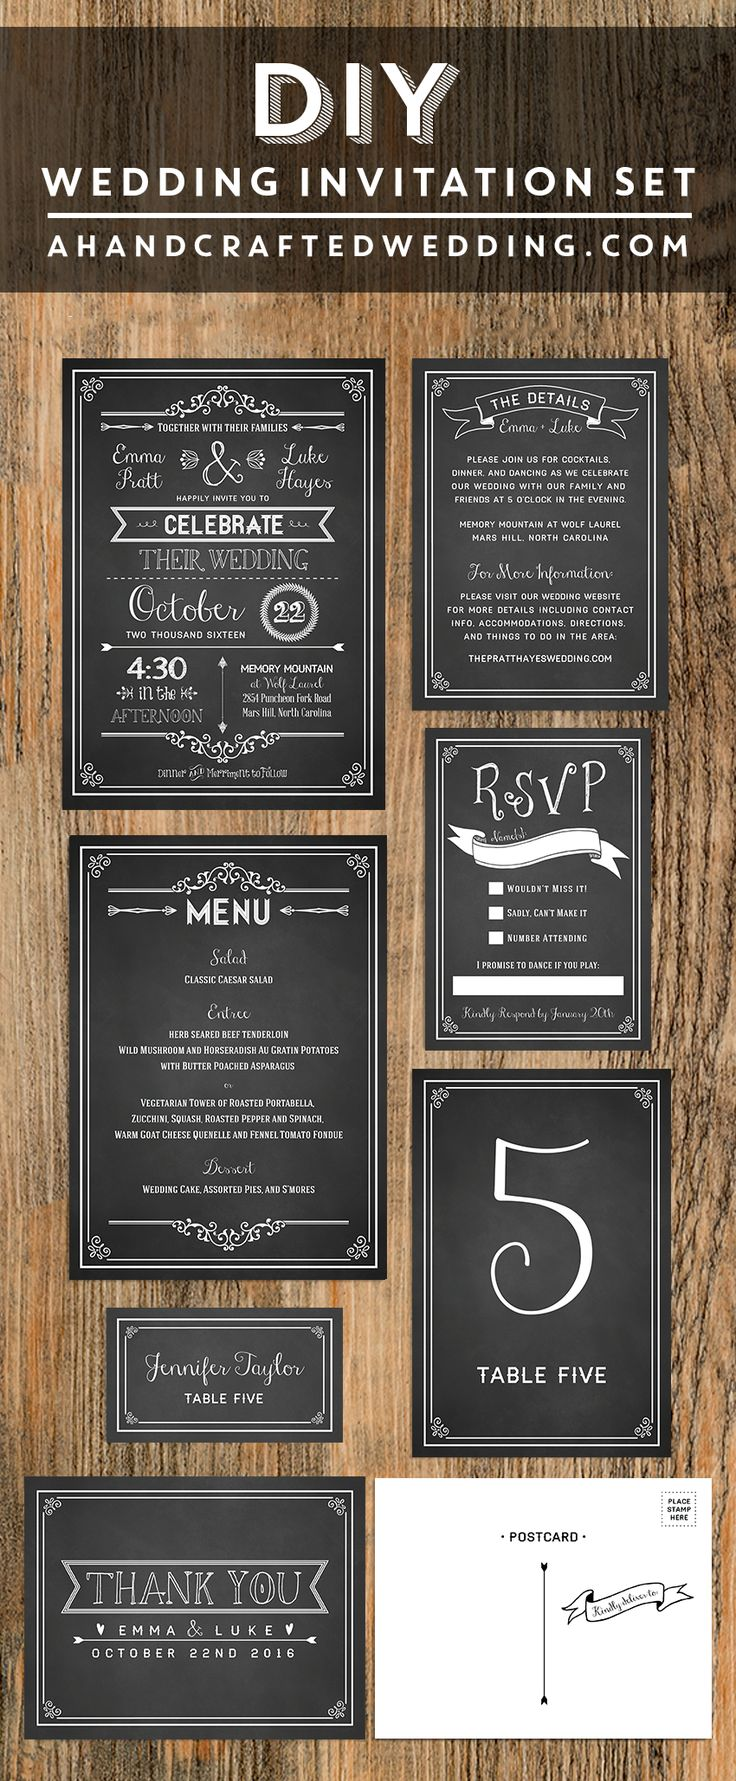 movie ticket stub wedding invitation%0A Vintage Typography Custom Designed Theater Wedding Invitation Set with  Antique Influence   Vintage typography  Custom design and Typography